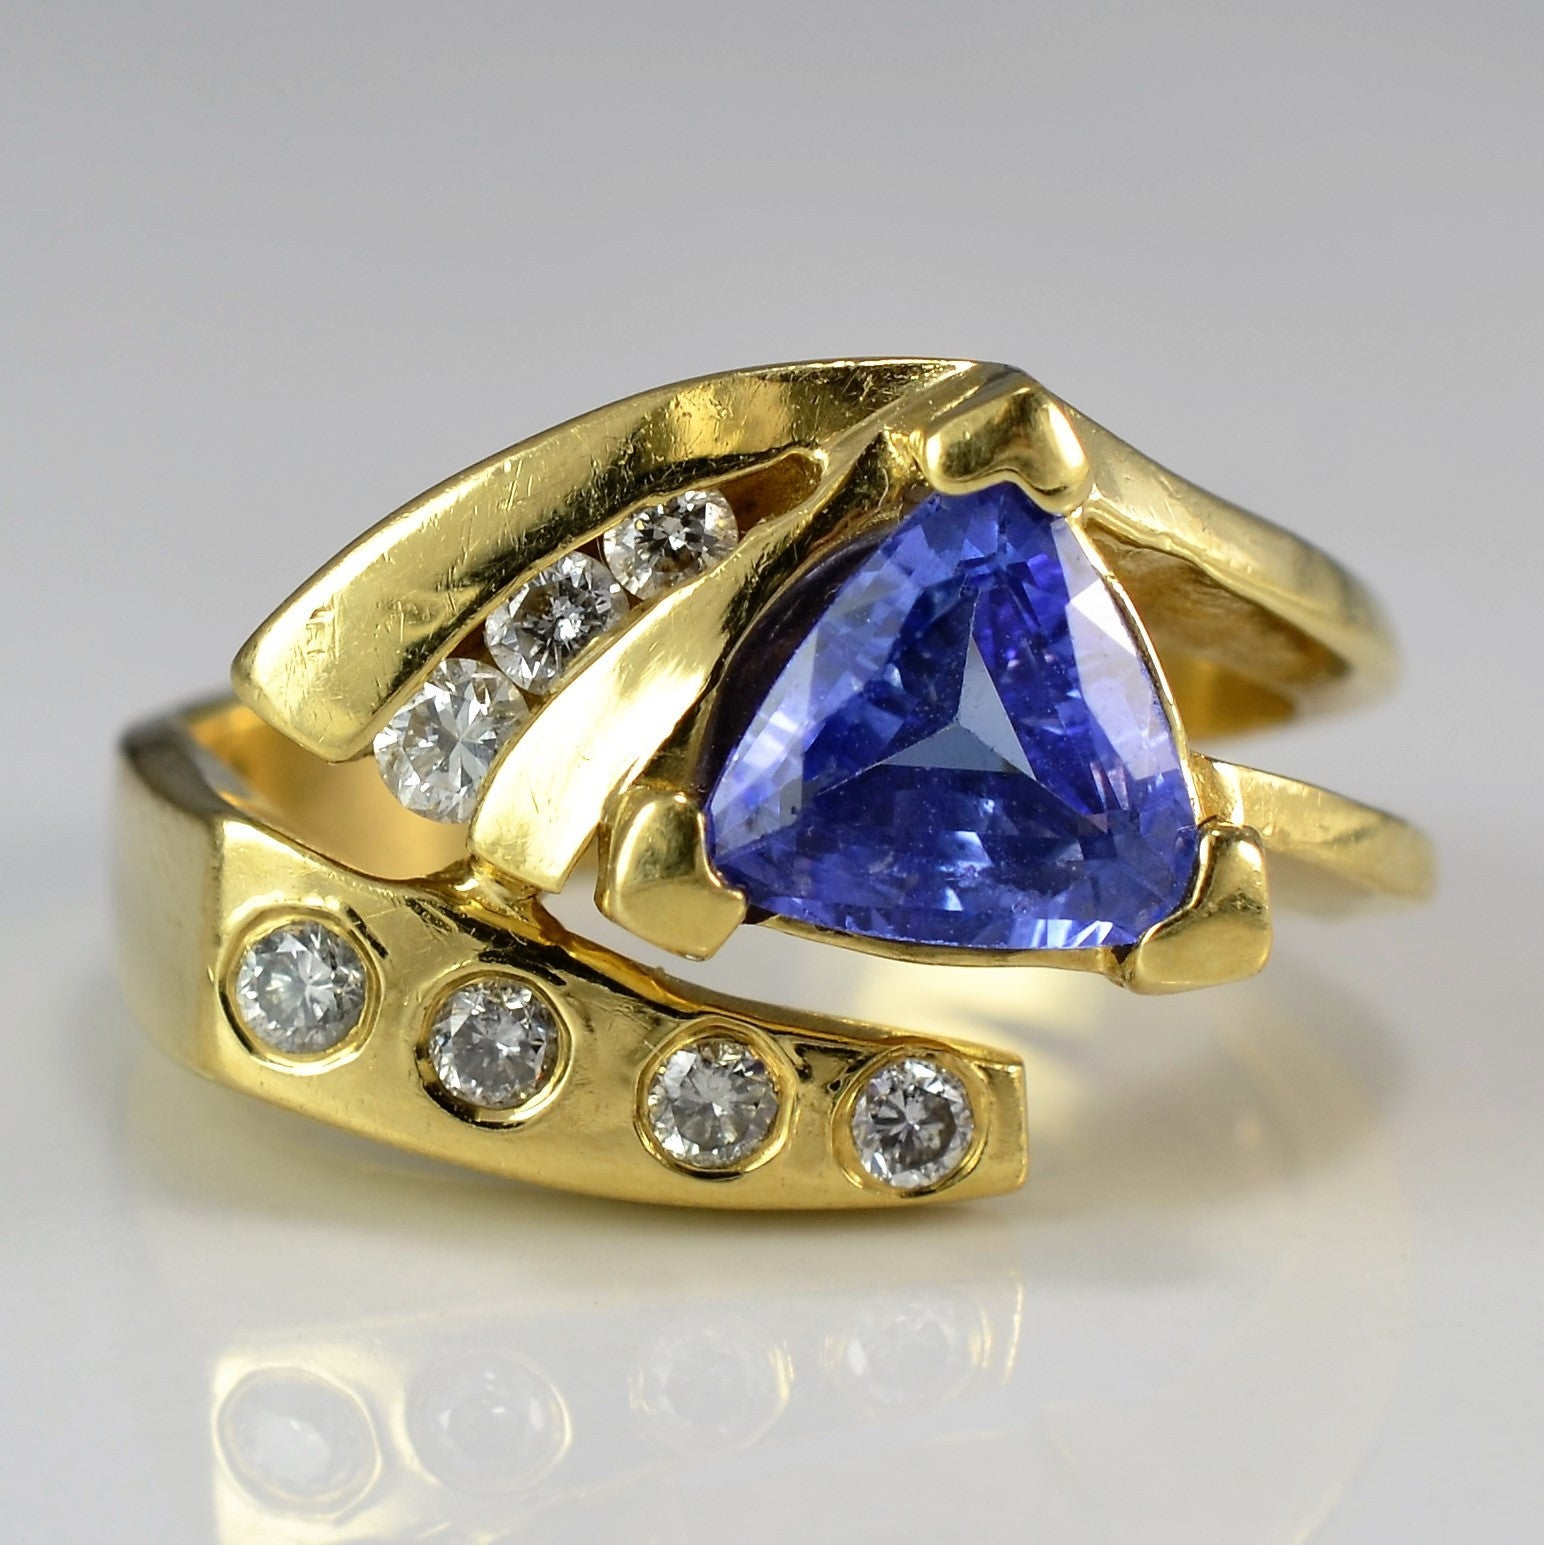 ring shop lynchburg trillion pawn product tanzanite